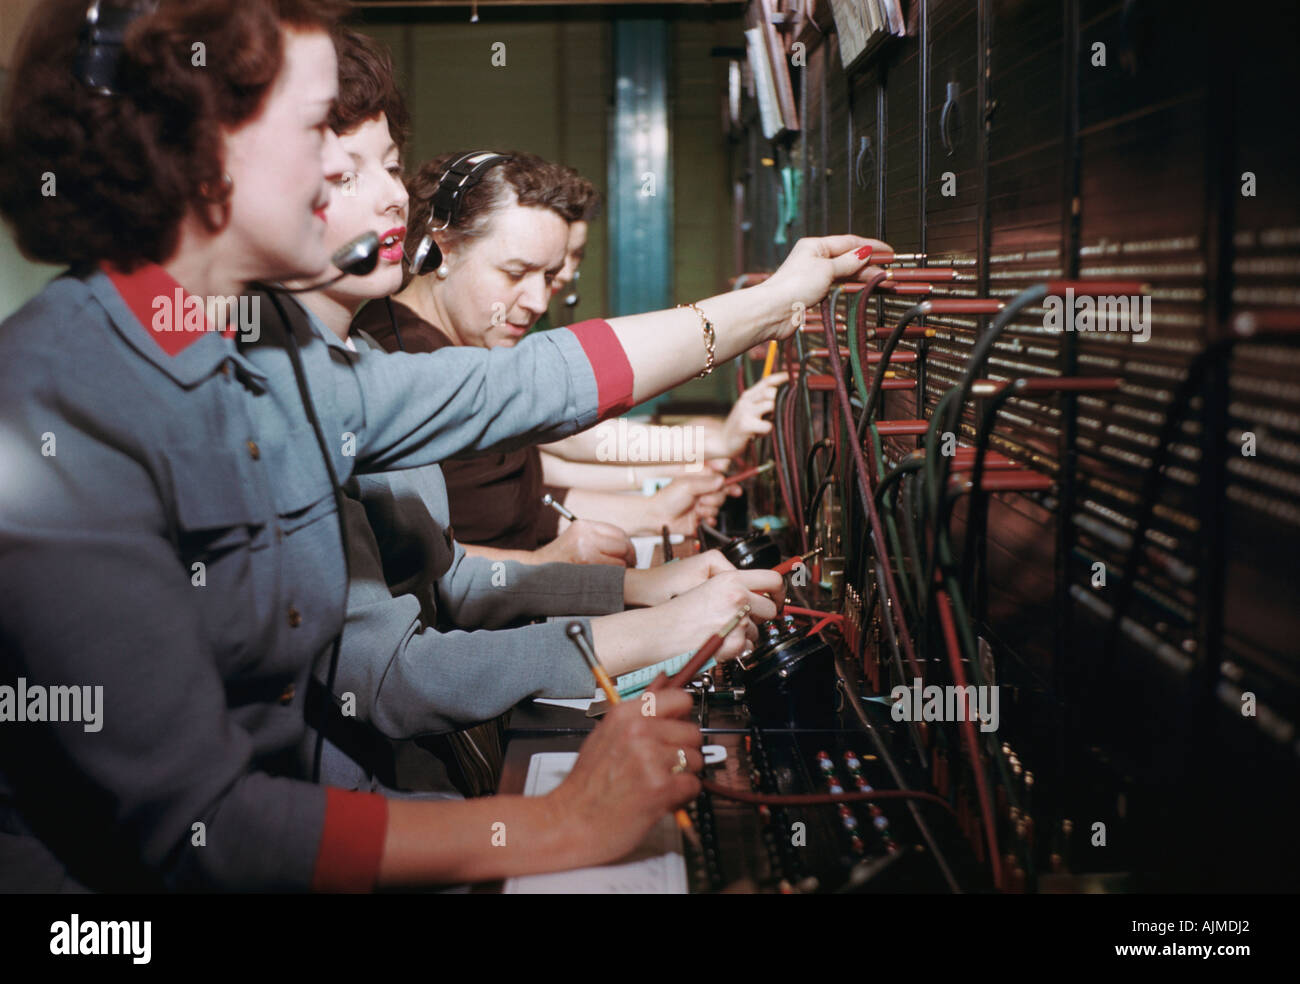 Telephone operator switchboard 1950s - Stock Image